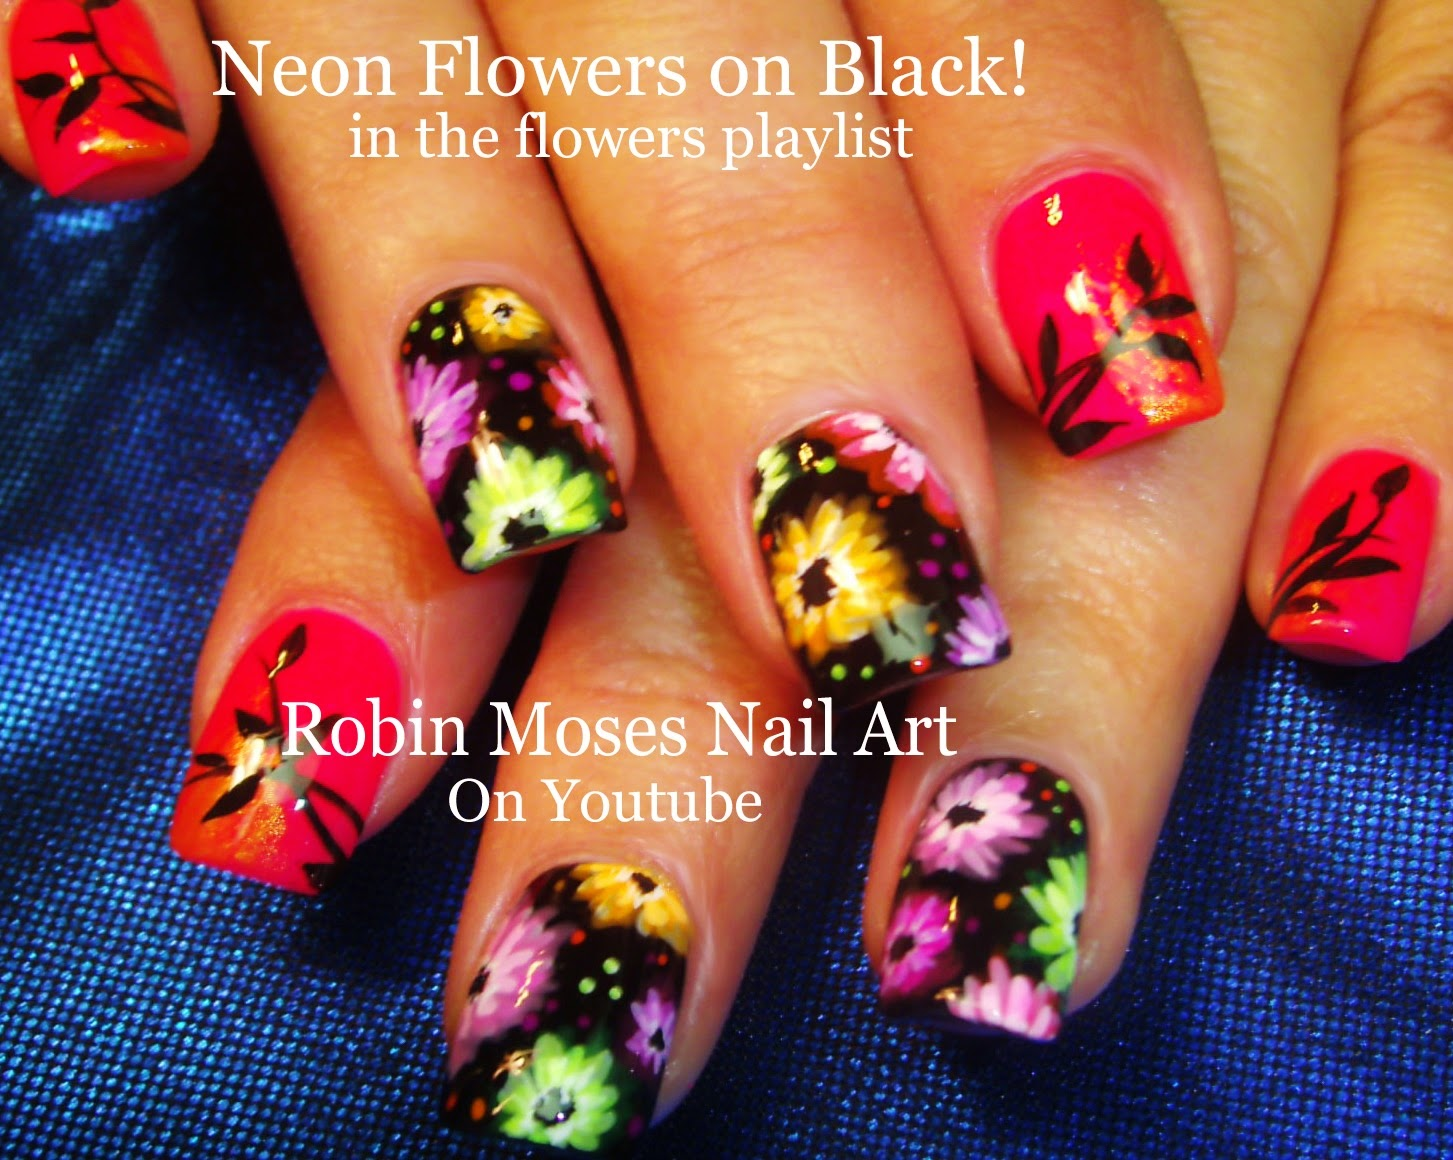 robin moses nail art: neon flower nail art to brighten up your day